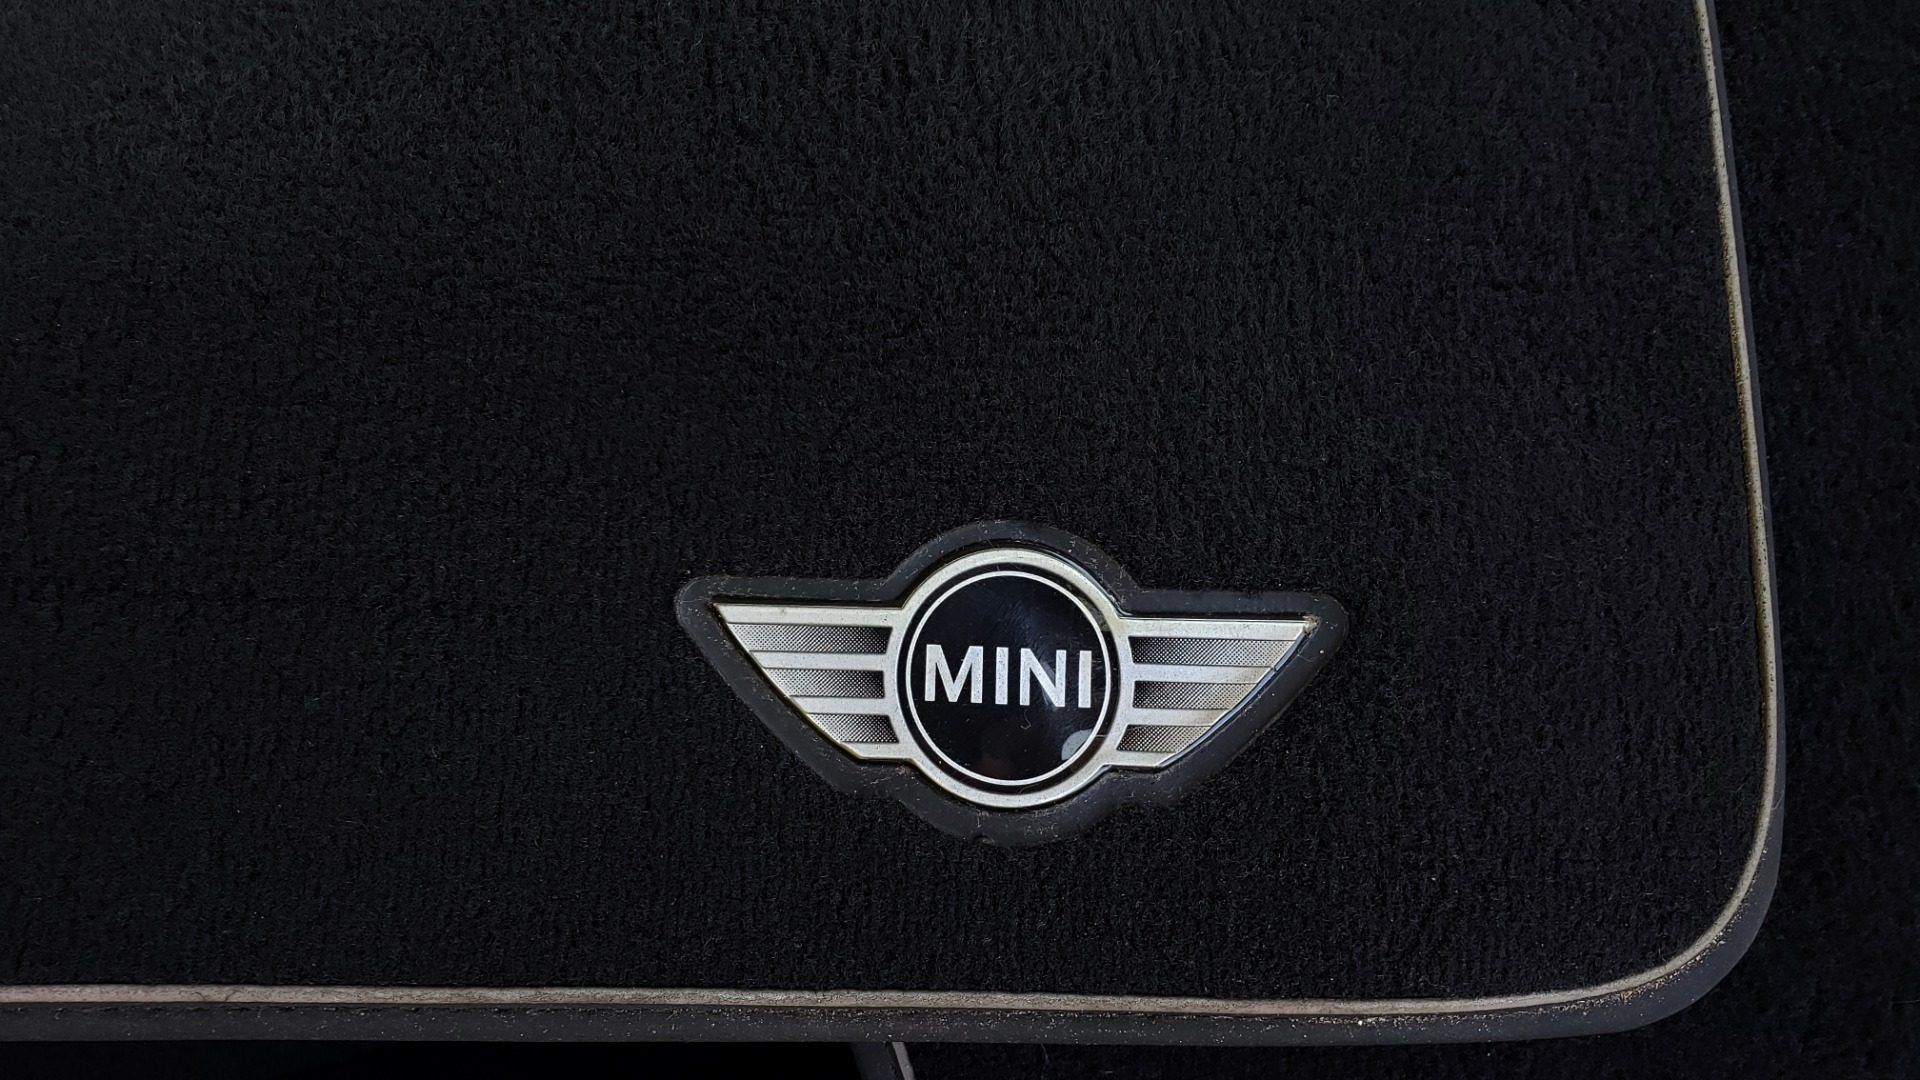 Used 2012 MINI COOPER HARDTOP 6-SPEED MANUAL / VERY CLEAN / 37 MPG for sale Sold at Formula Imports in Charlotte NC 28227 18